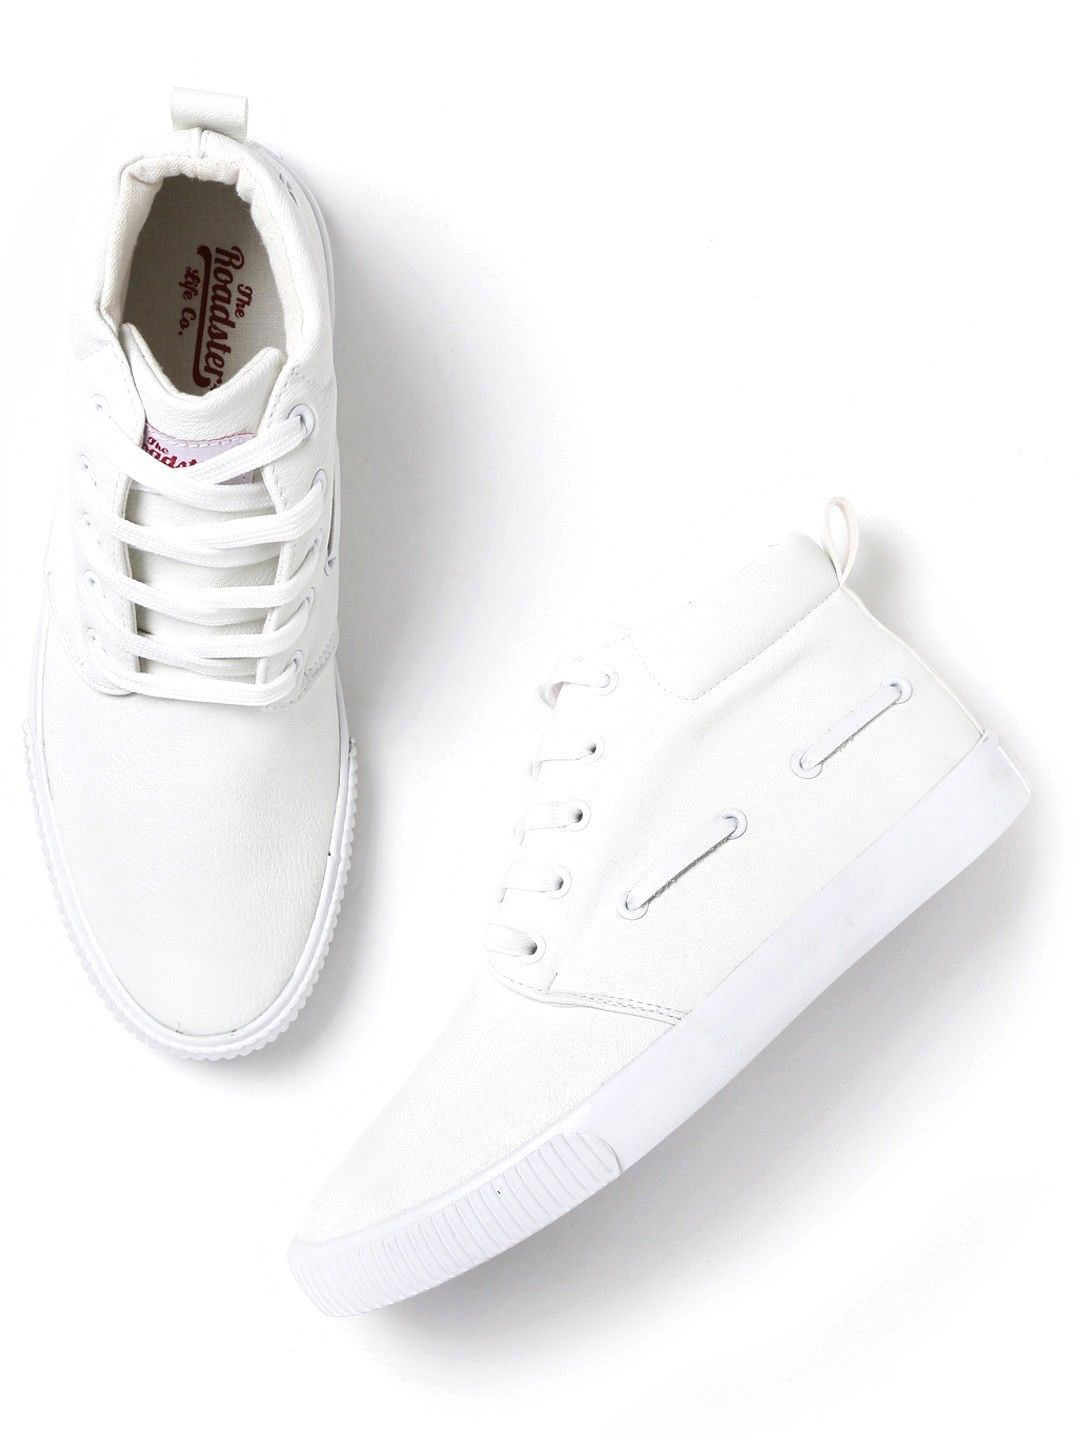 0d9969aec08 Roadster Men Mid-Top Sneakers White Casual Shoes - Buy Roadster Men Mid-Top  Sneakers White Casual Shoes Online at Best Prices in India on Snapdeal